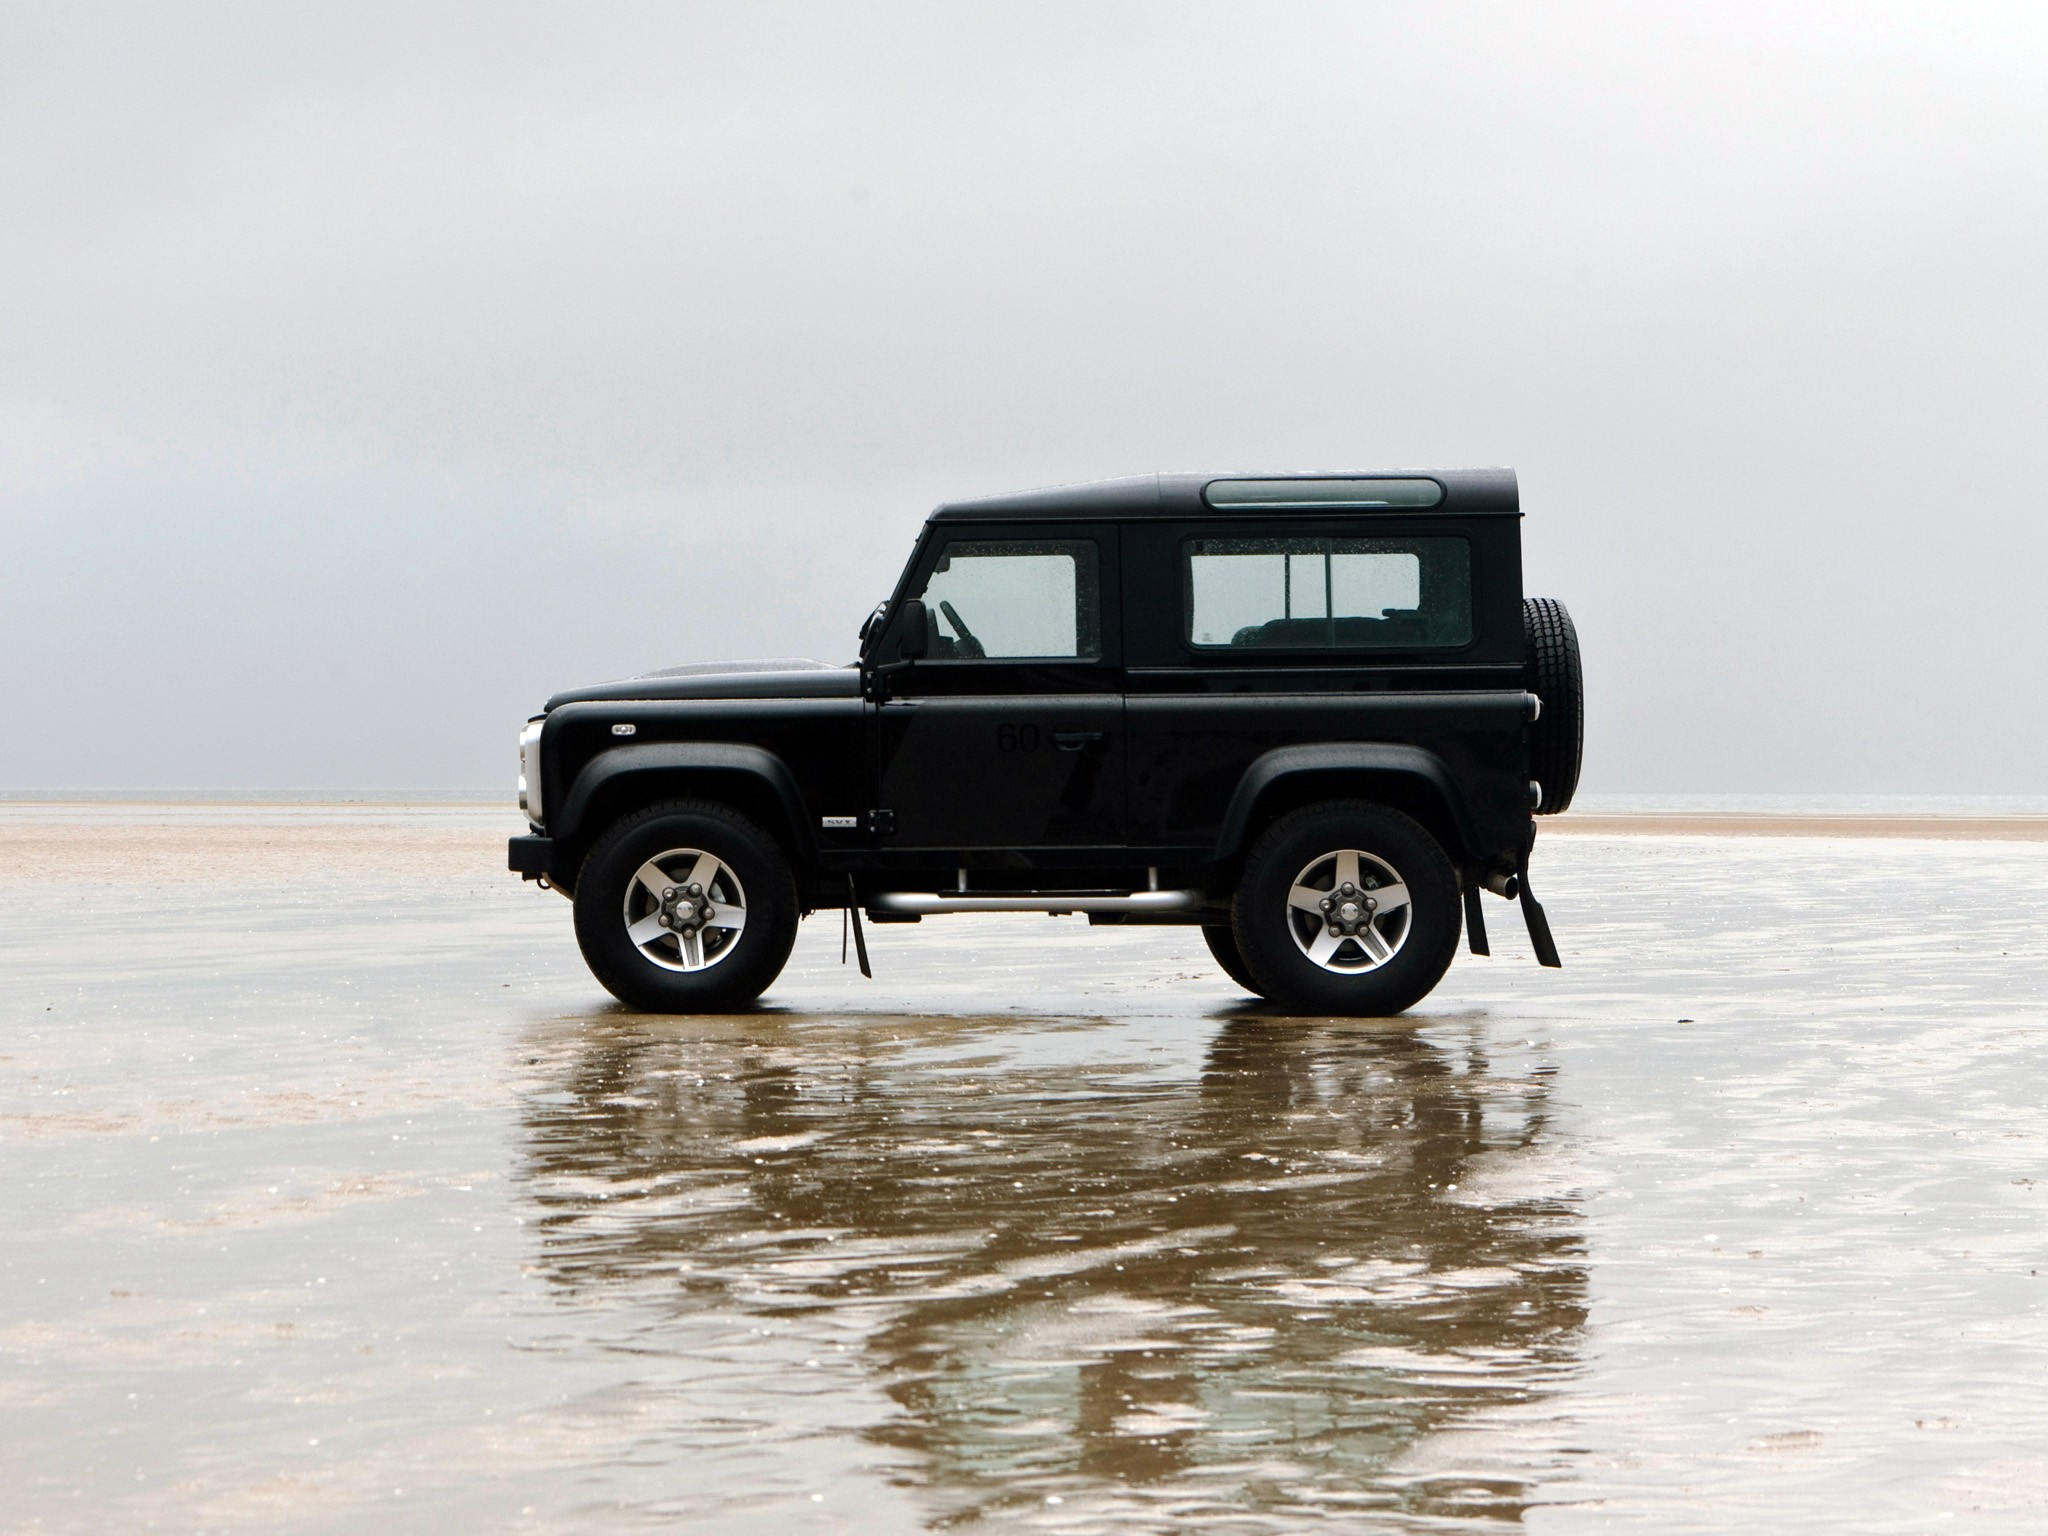 2019 Land Rover Defender Svx Considered Jaguar Svx Models